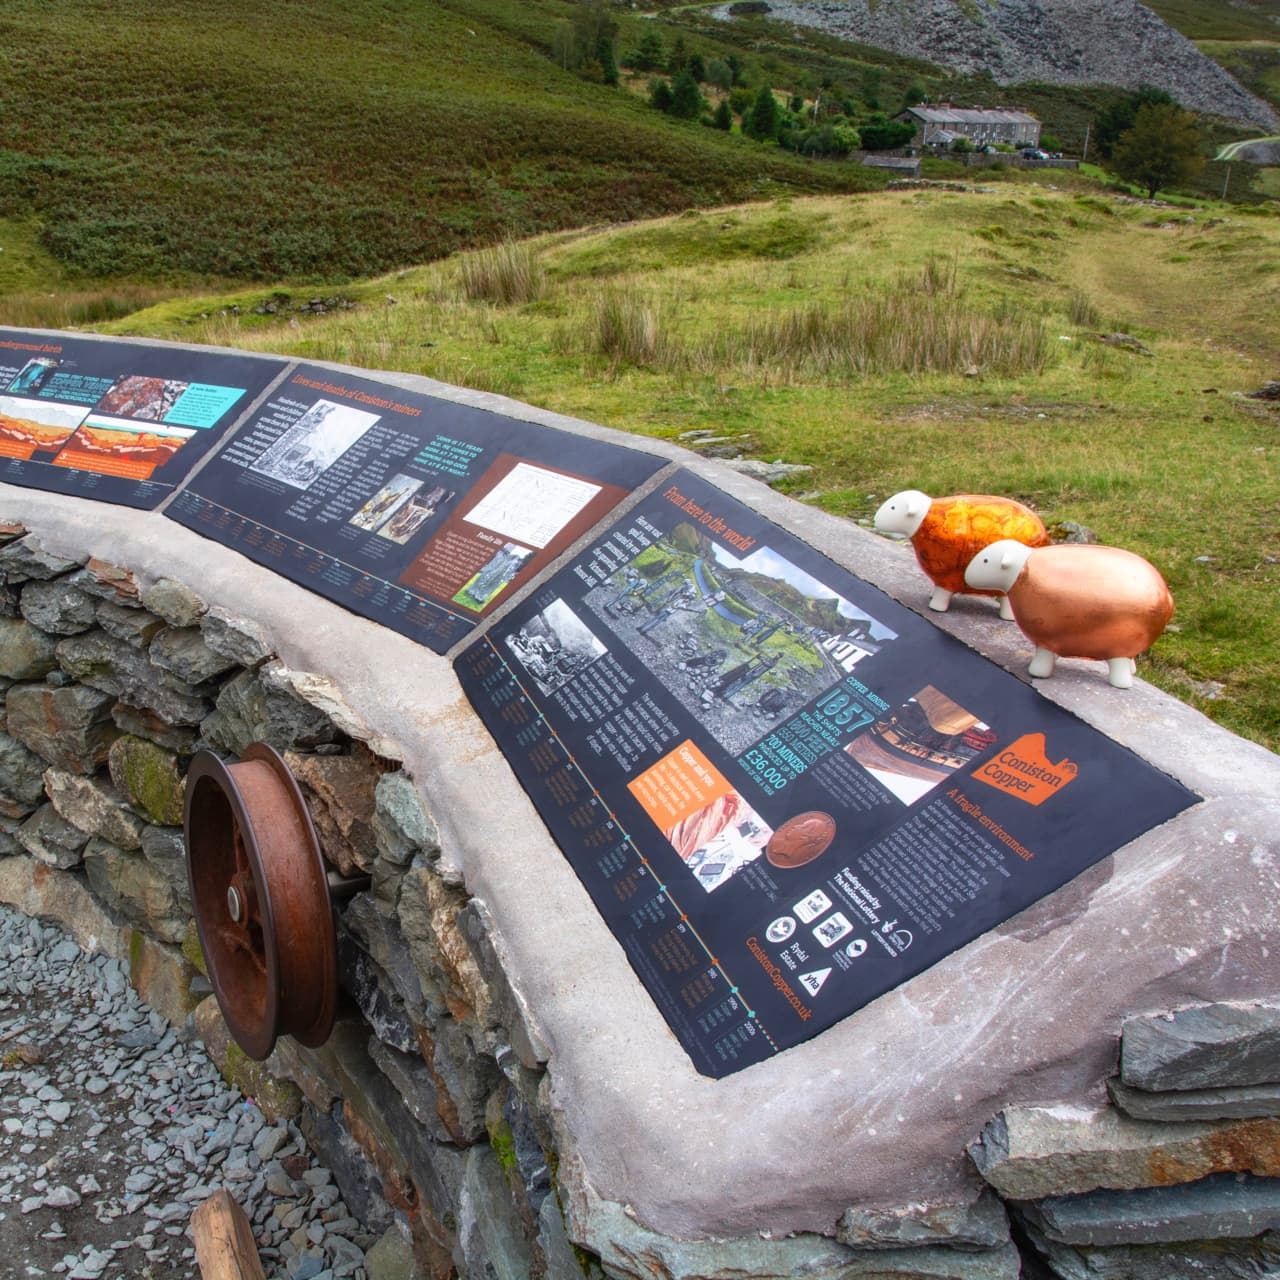 Two Copper Herdys perch on the tourist information boards about the Coppermine valley